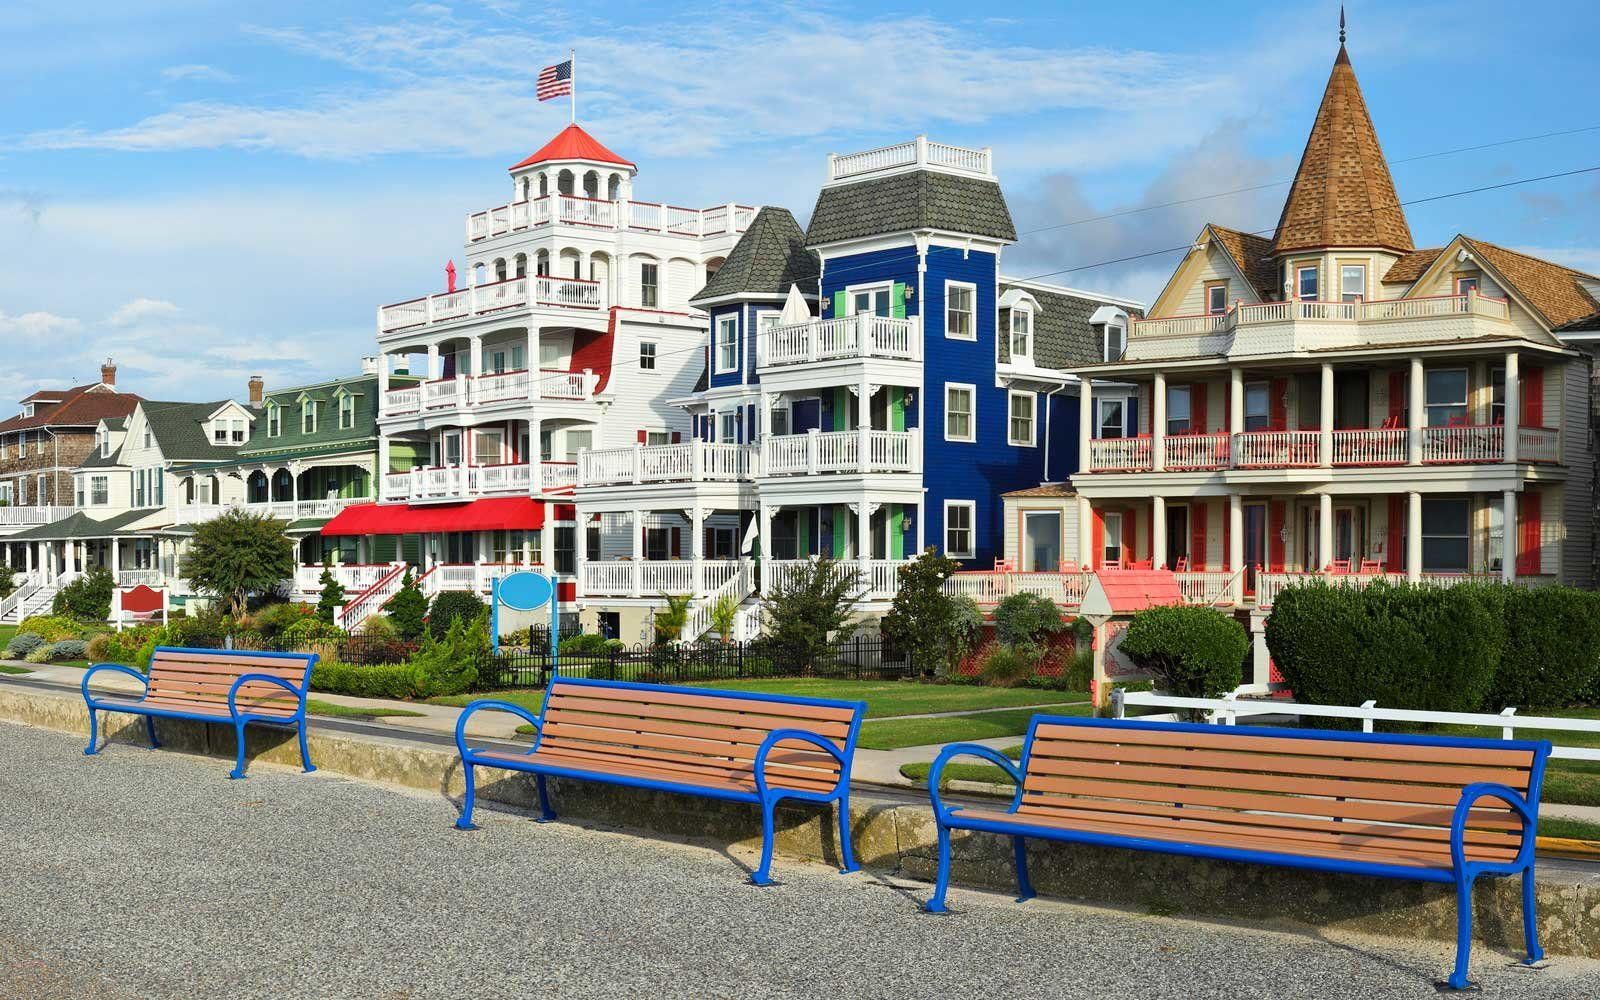 20 Most Beautiful Places to Visit in New Jersey - Page 5